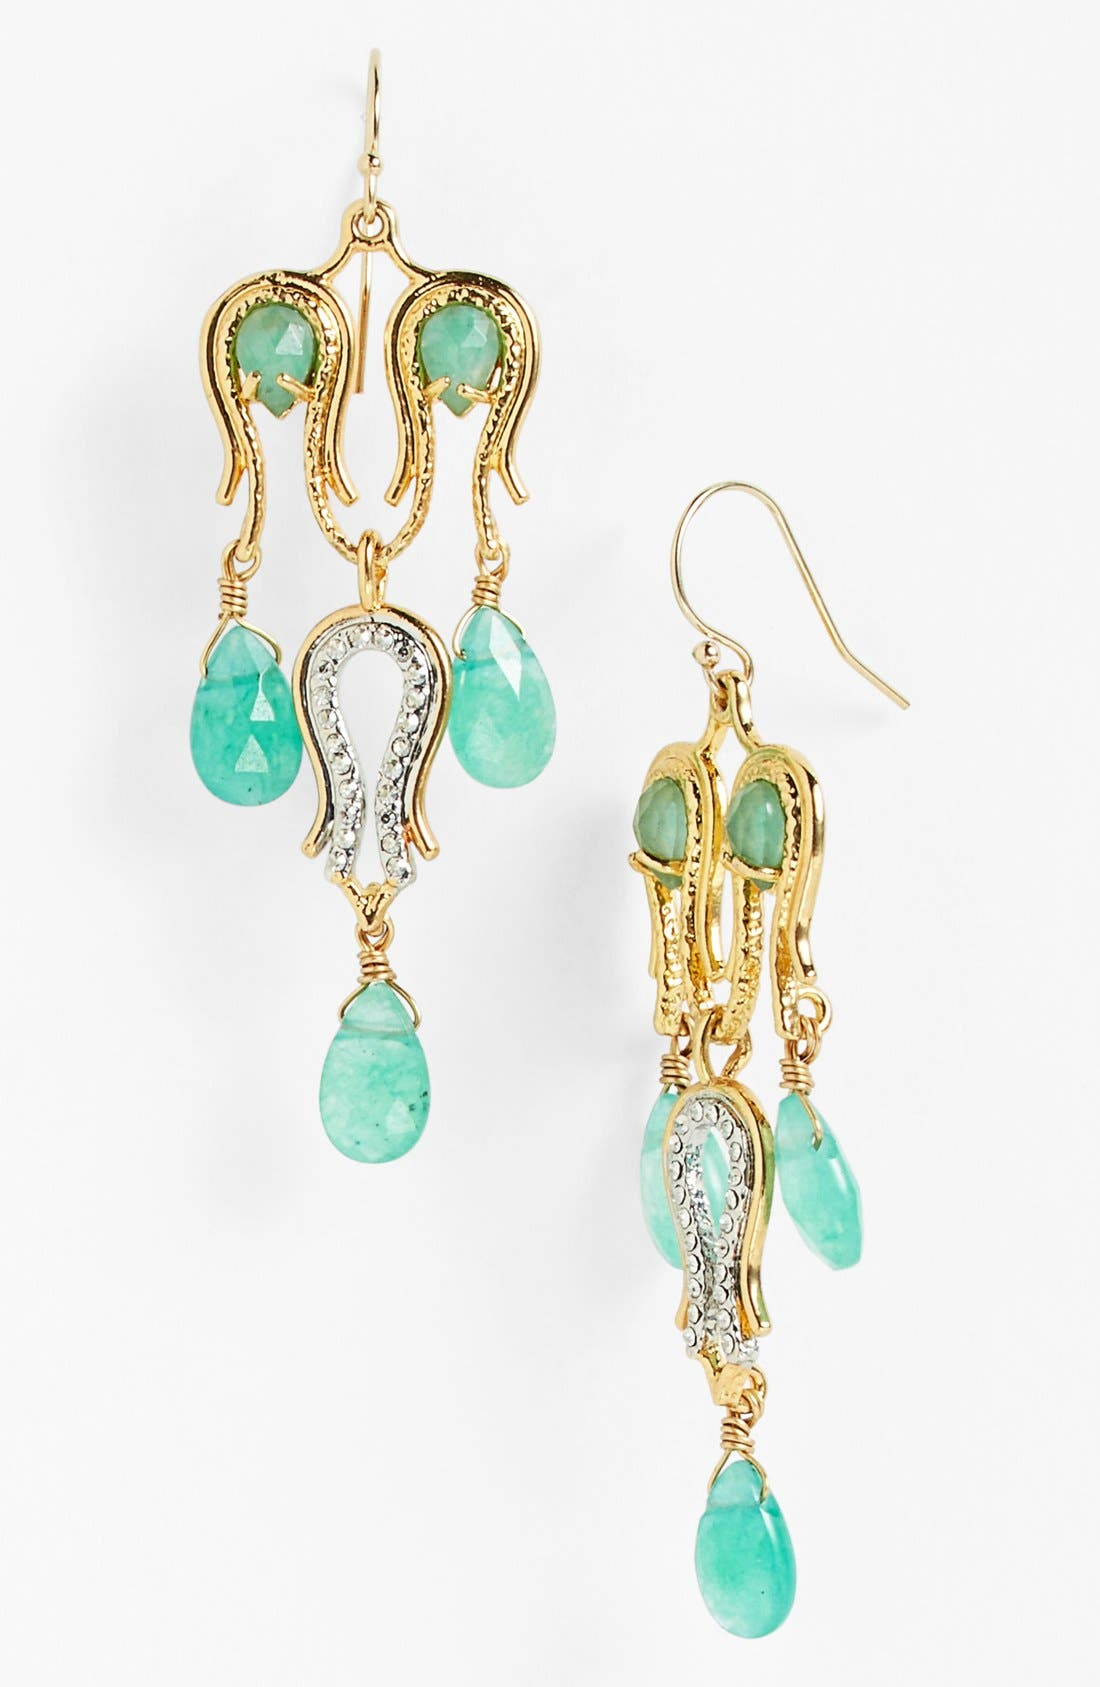 Alternate Image 1 Selected - Alexis Bittar 'Elements - Maldivian' Semiprecious Stone Chandelier Earrings